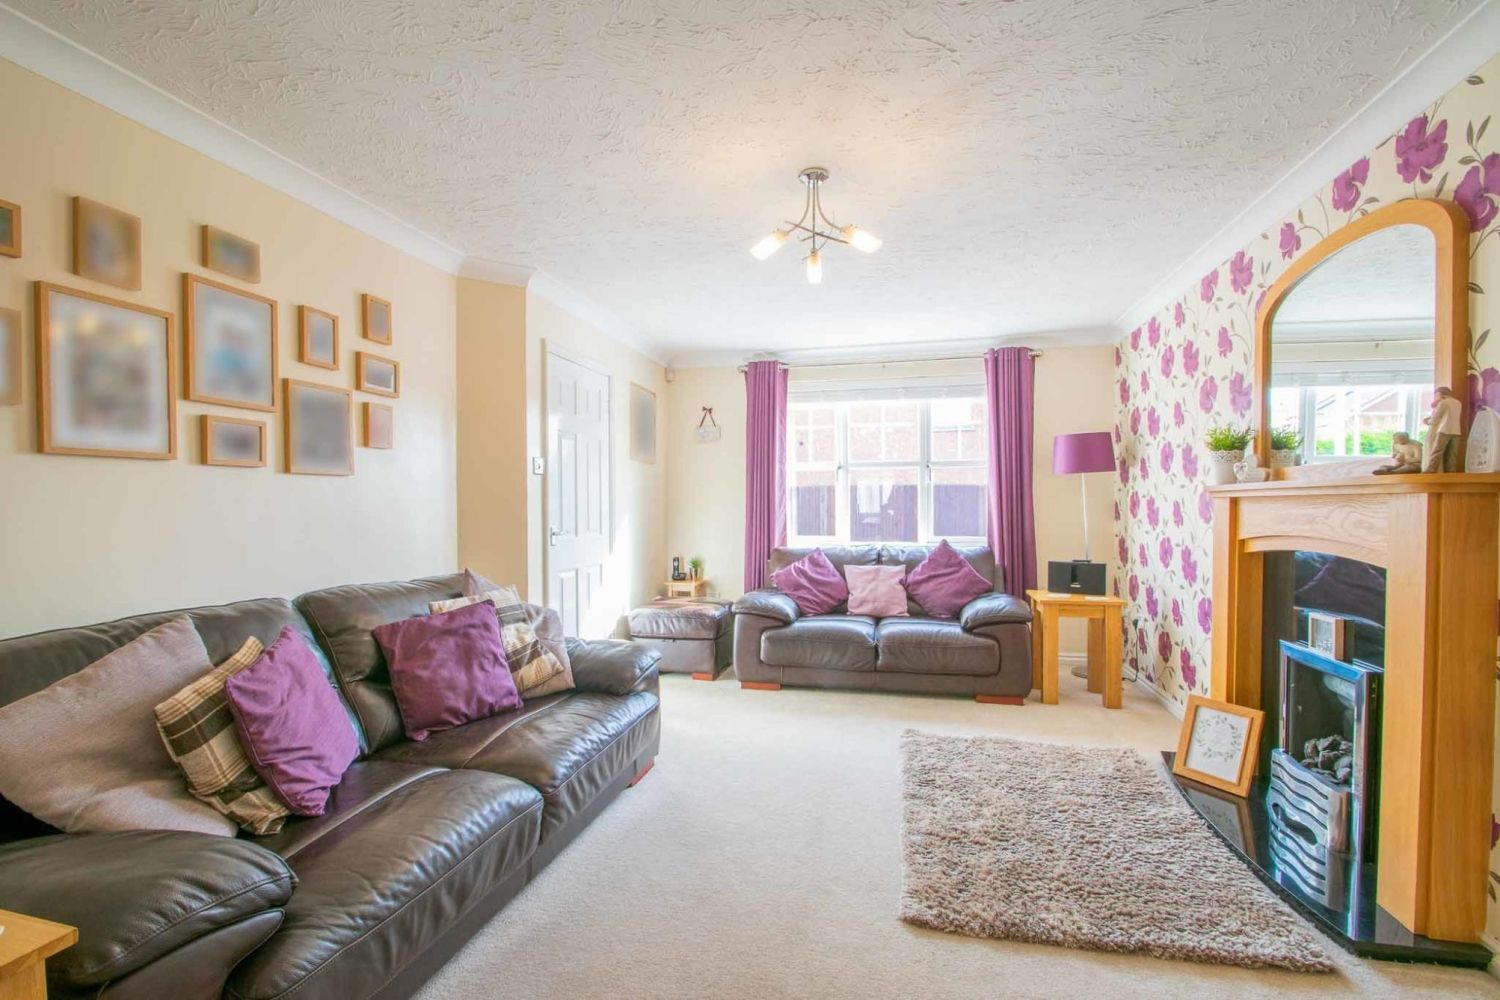 3 bed detached for sale in Batchelor Close, Amblecote  - Property Image 2